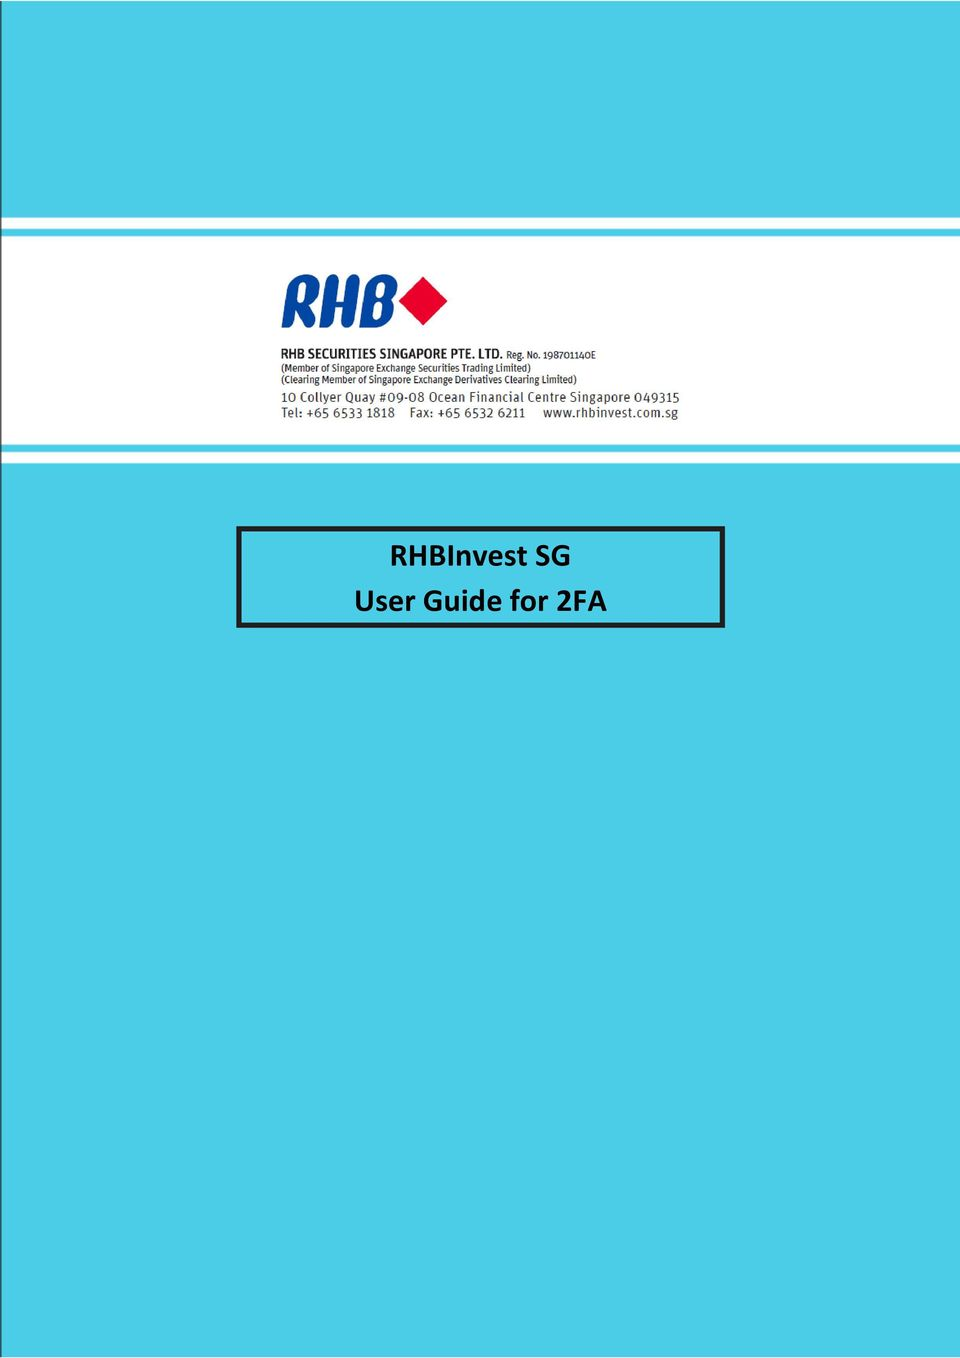 RHBInvest SG User Guide for 2FA - PDF